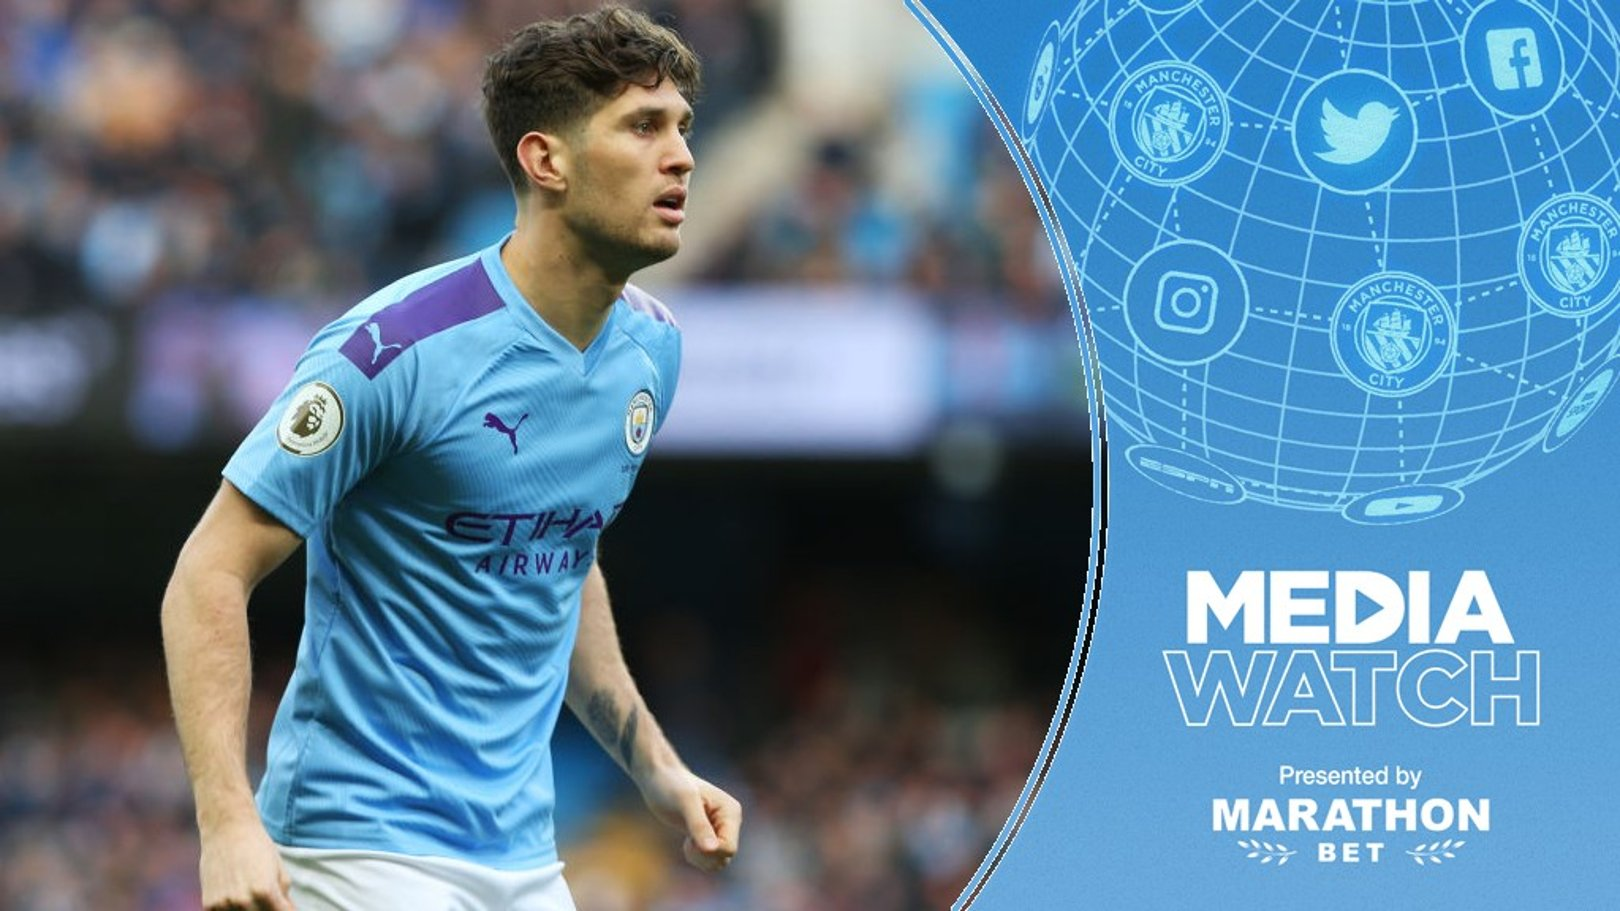 Media Watch: Momentum building for Stones